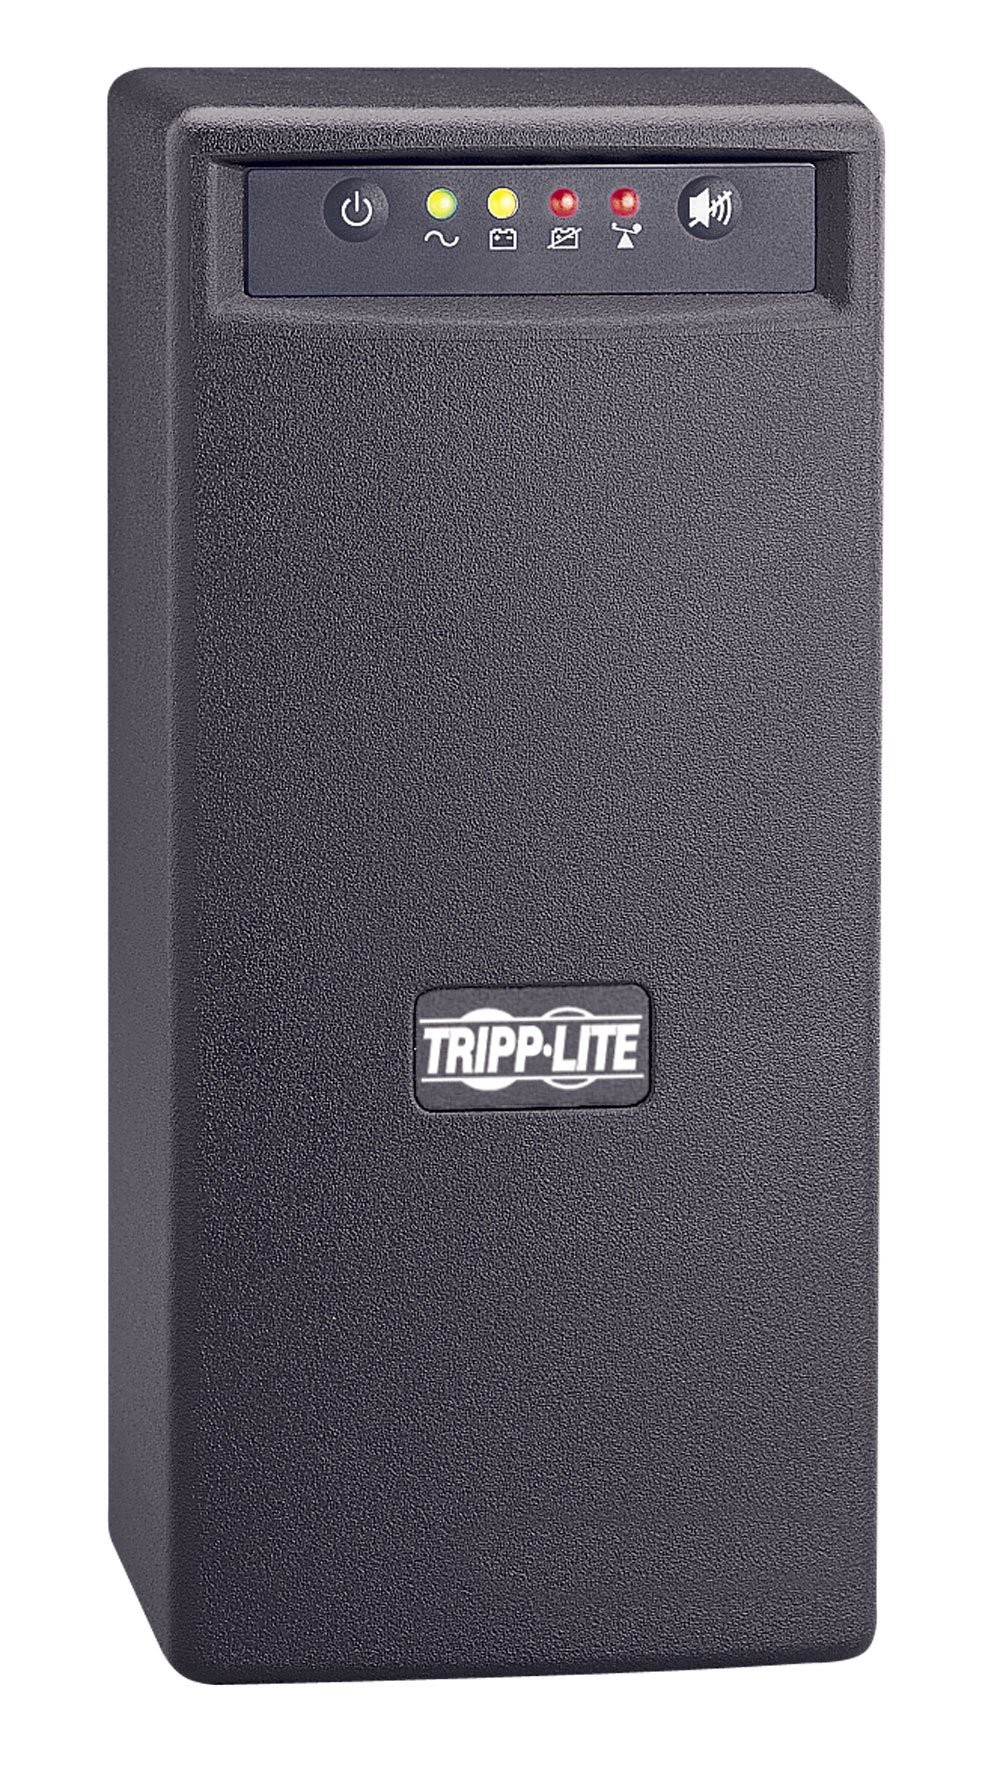 Tripp Lite SMART750USB 750VA 450W UPS Battery Back Up Tower AVR 120V USB RJ45, 6 Outlets by Tripp Lite